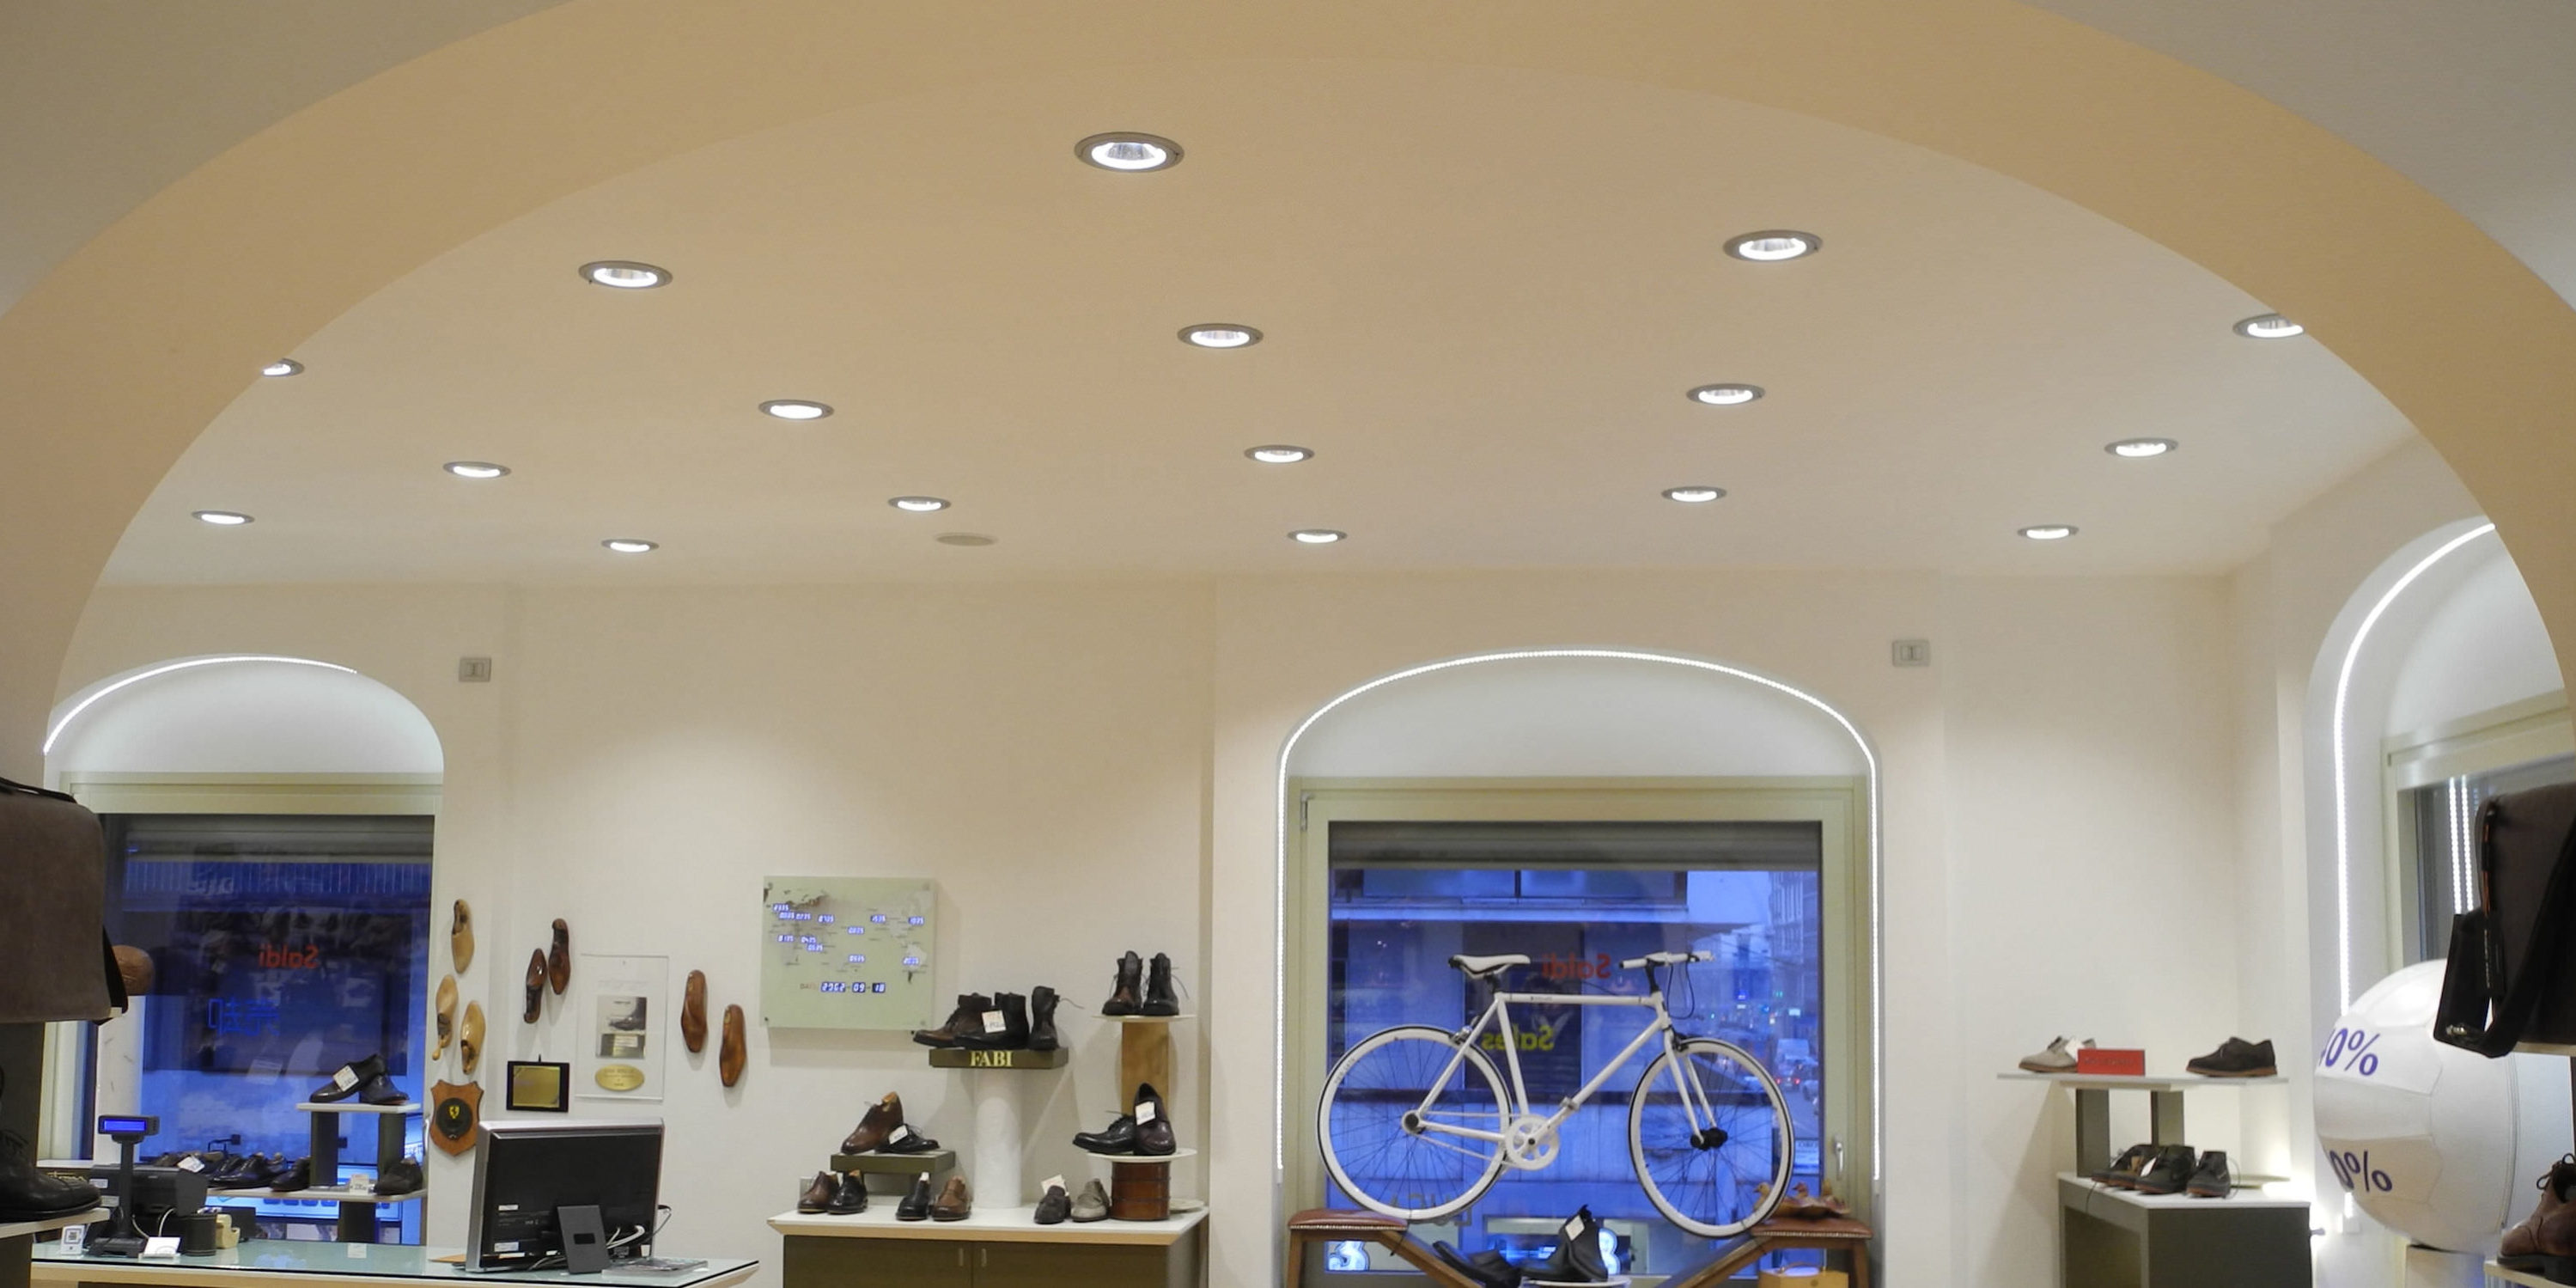 Luces Downlight Led 5 Sencillos Pasos Para Elegir El Mejor Led Downlight Tyd